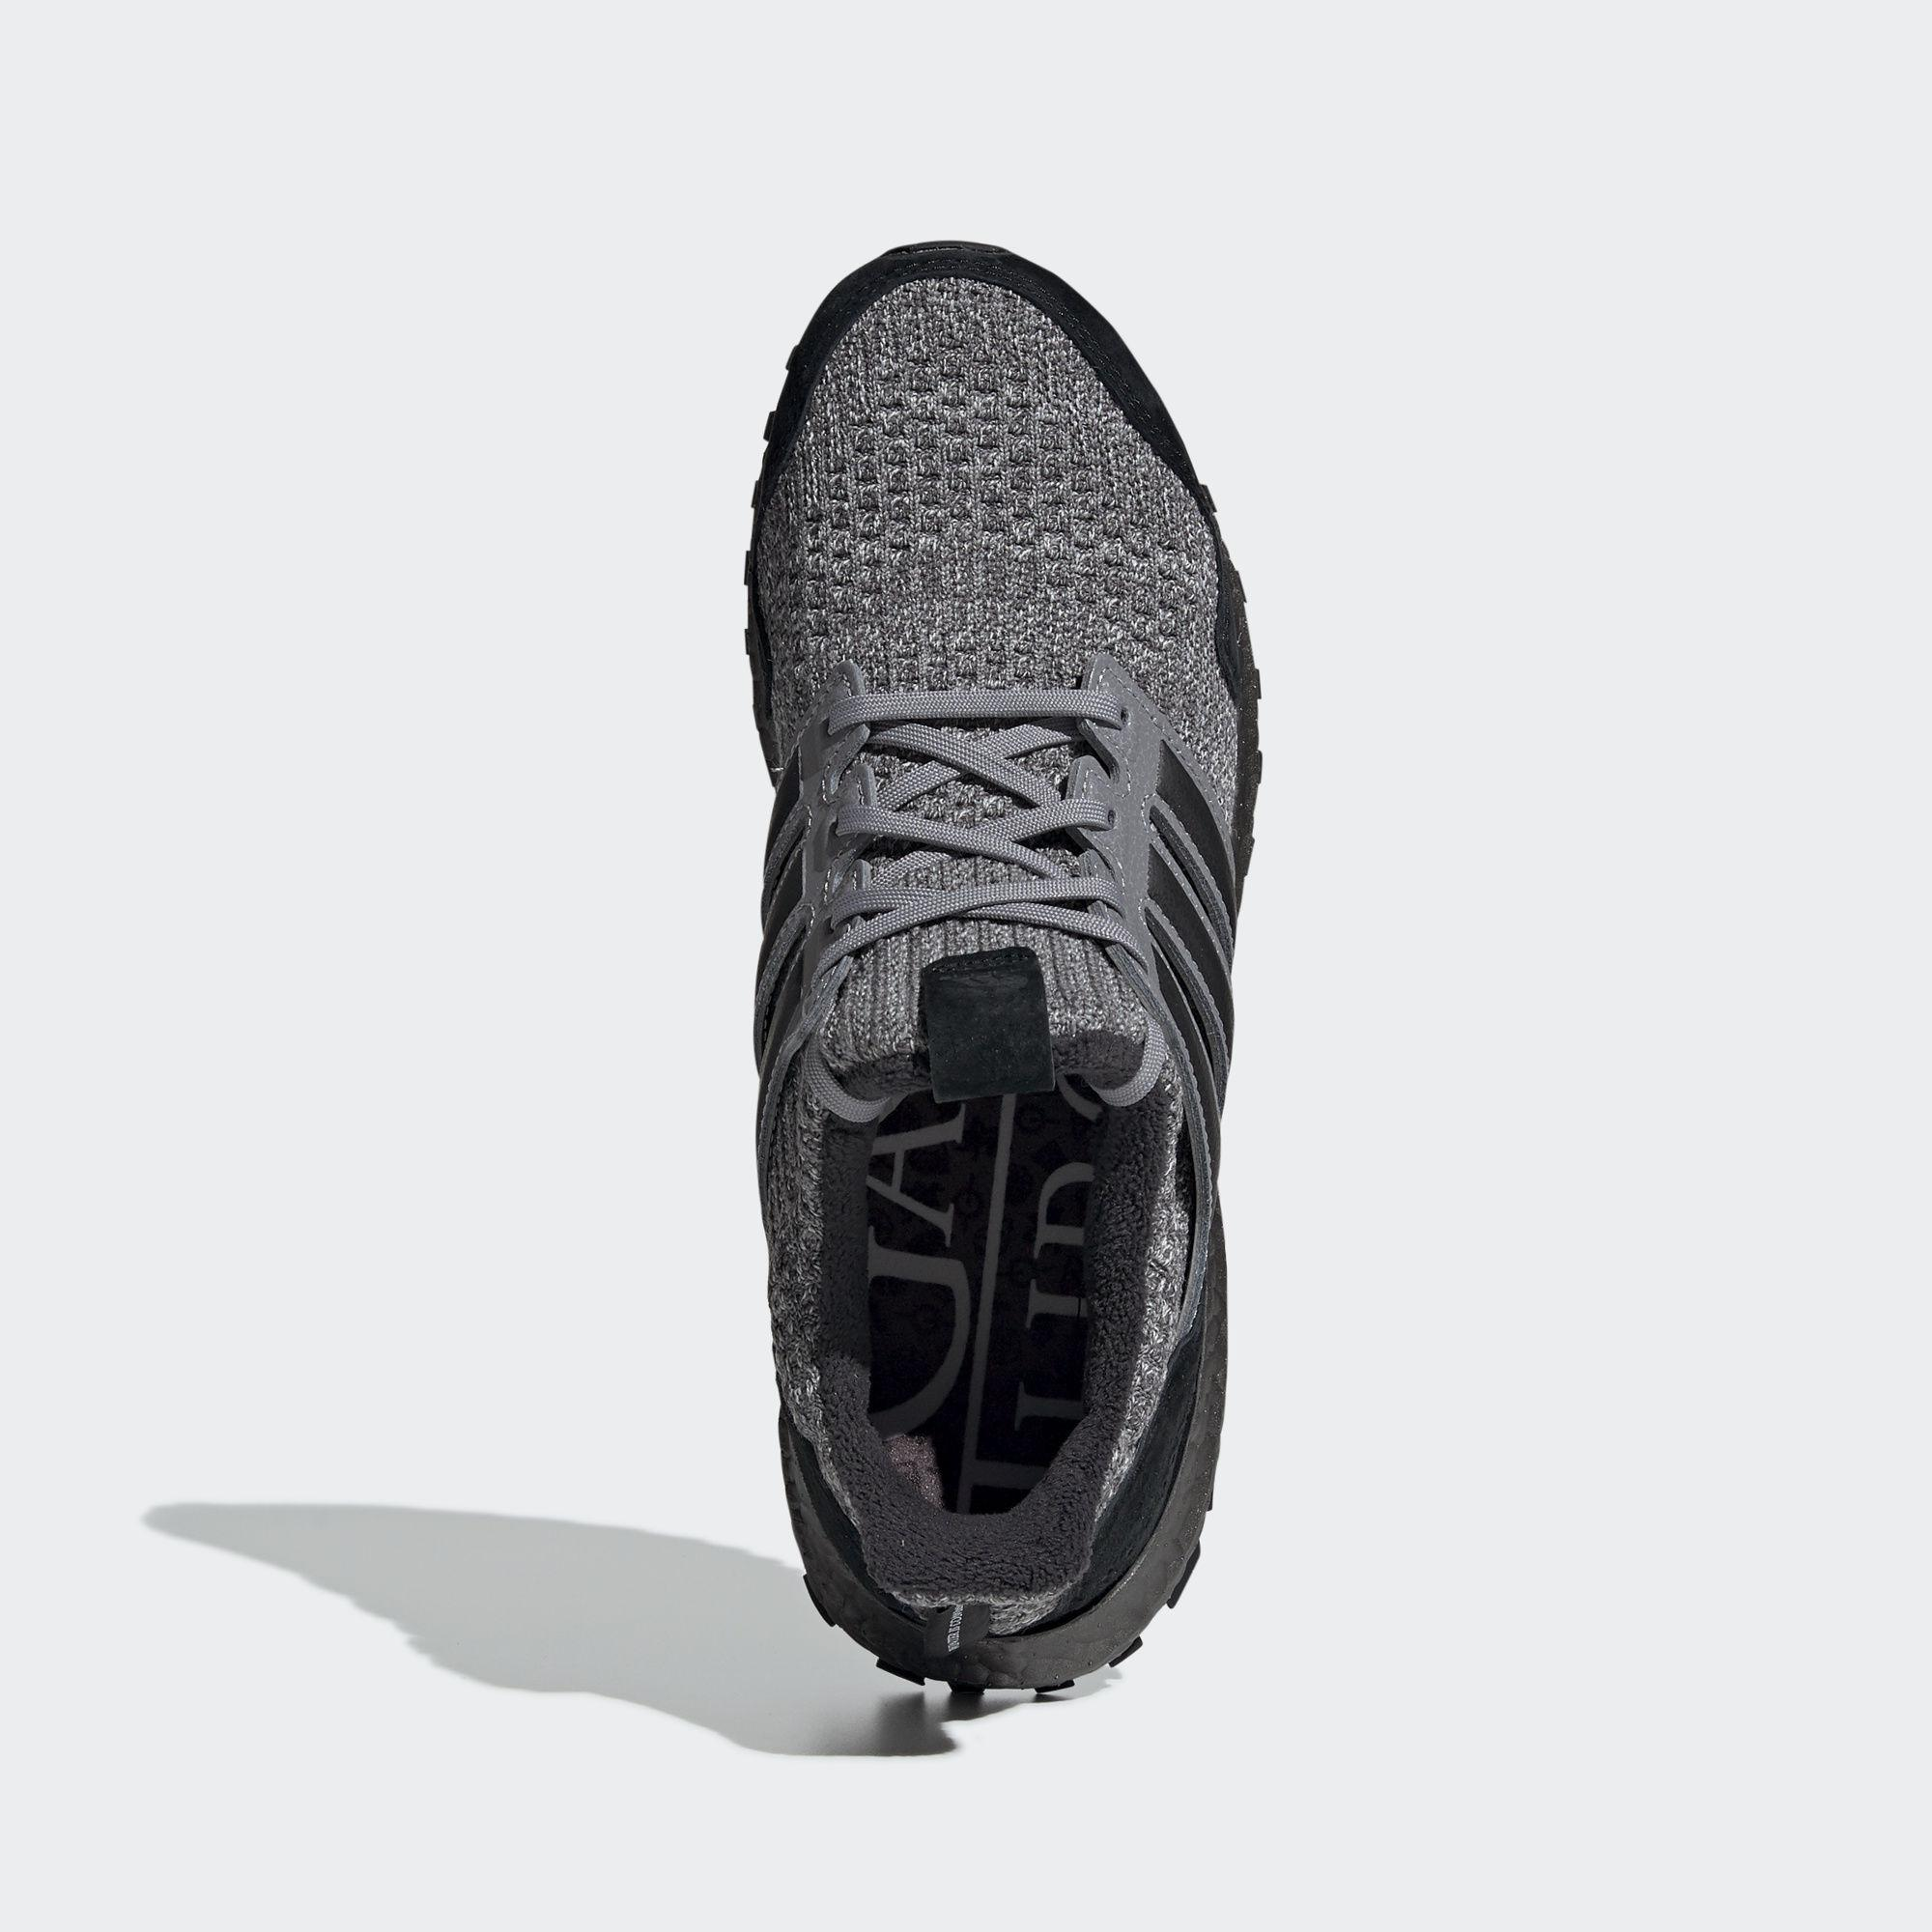 f032597f0 Adidas - Black Ultraboost X Game Of Thrones Shoes for Men - Lyst. View  fullscreen